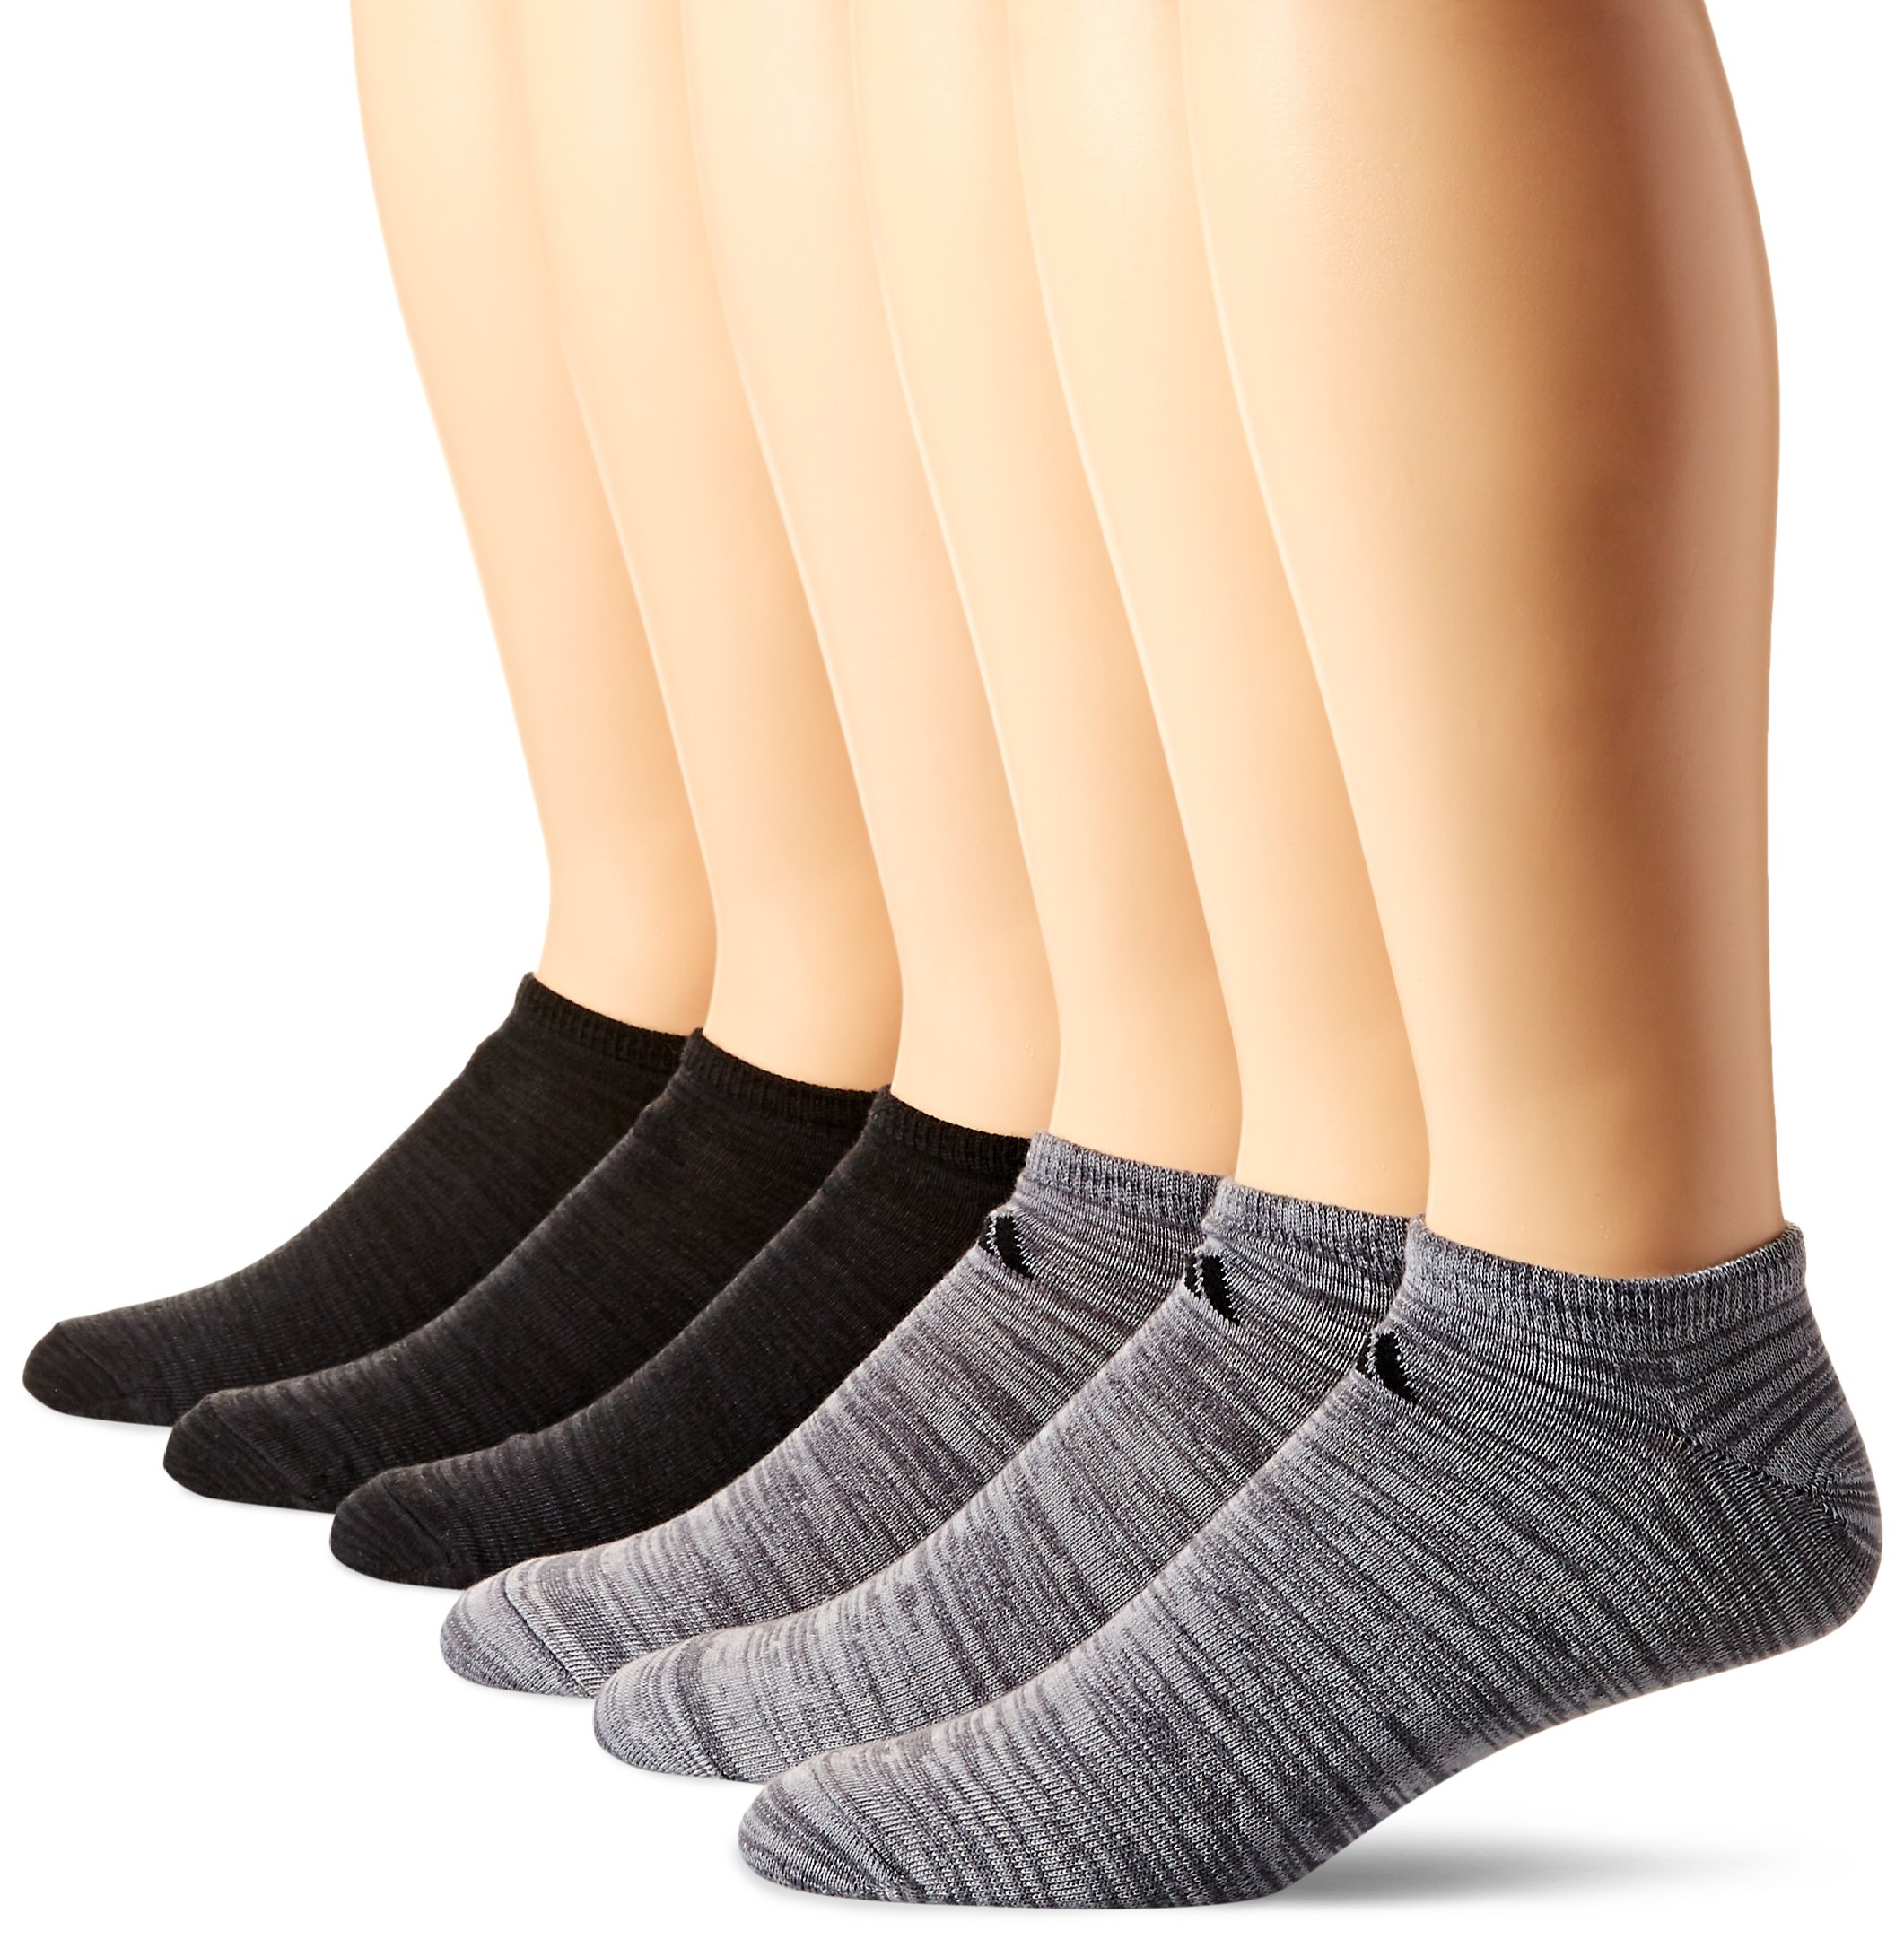 adidas Men's Superlite Low Cut Socks (6-Pair), Onix - Clear Onix Space Dye/Black Black - Night Grey S, Large, (Shoe Size 6-12) by adidas